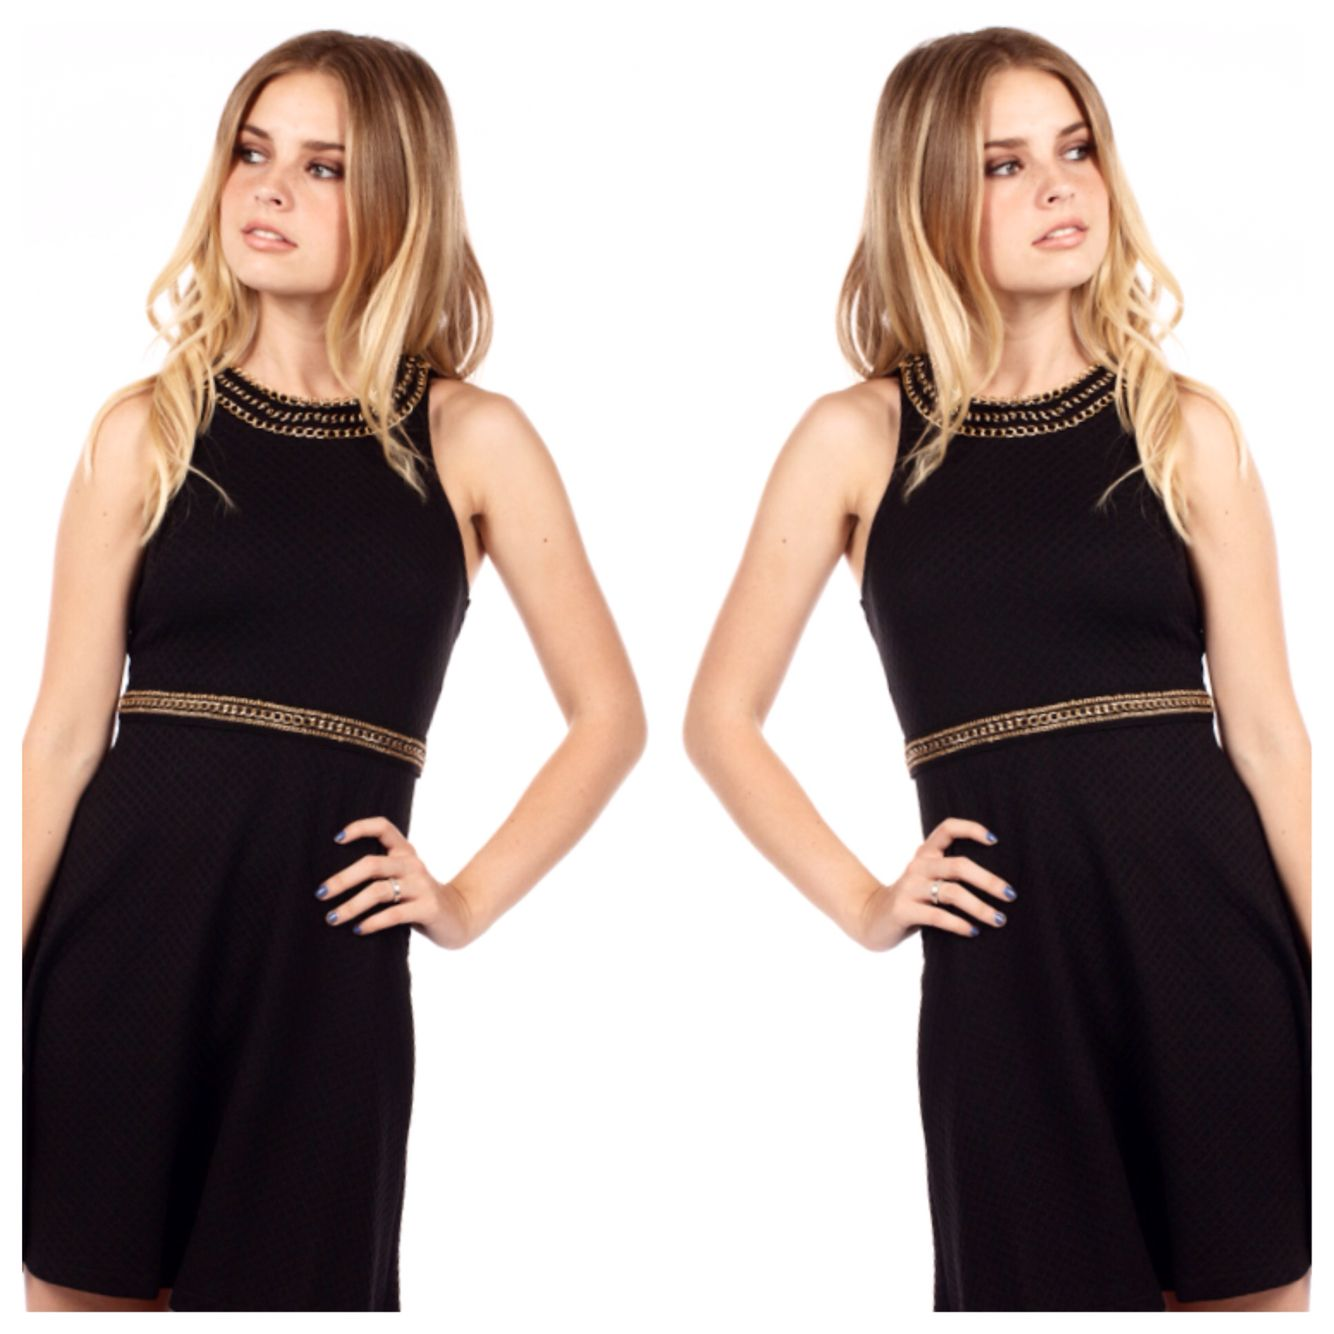 The Chain Chains. Our Gold Chains Skater Dress is light and comfy yet classy and chic. ❌⭕️❌⭕️ What are you wearing? #beautyconvict #dress #dresses #chic #edgy #classy #cute #vday